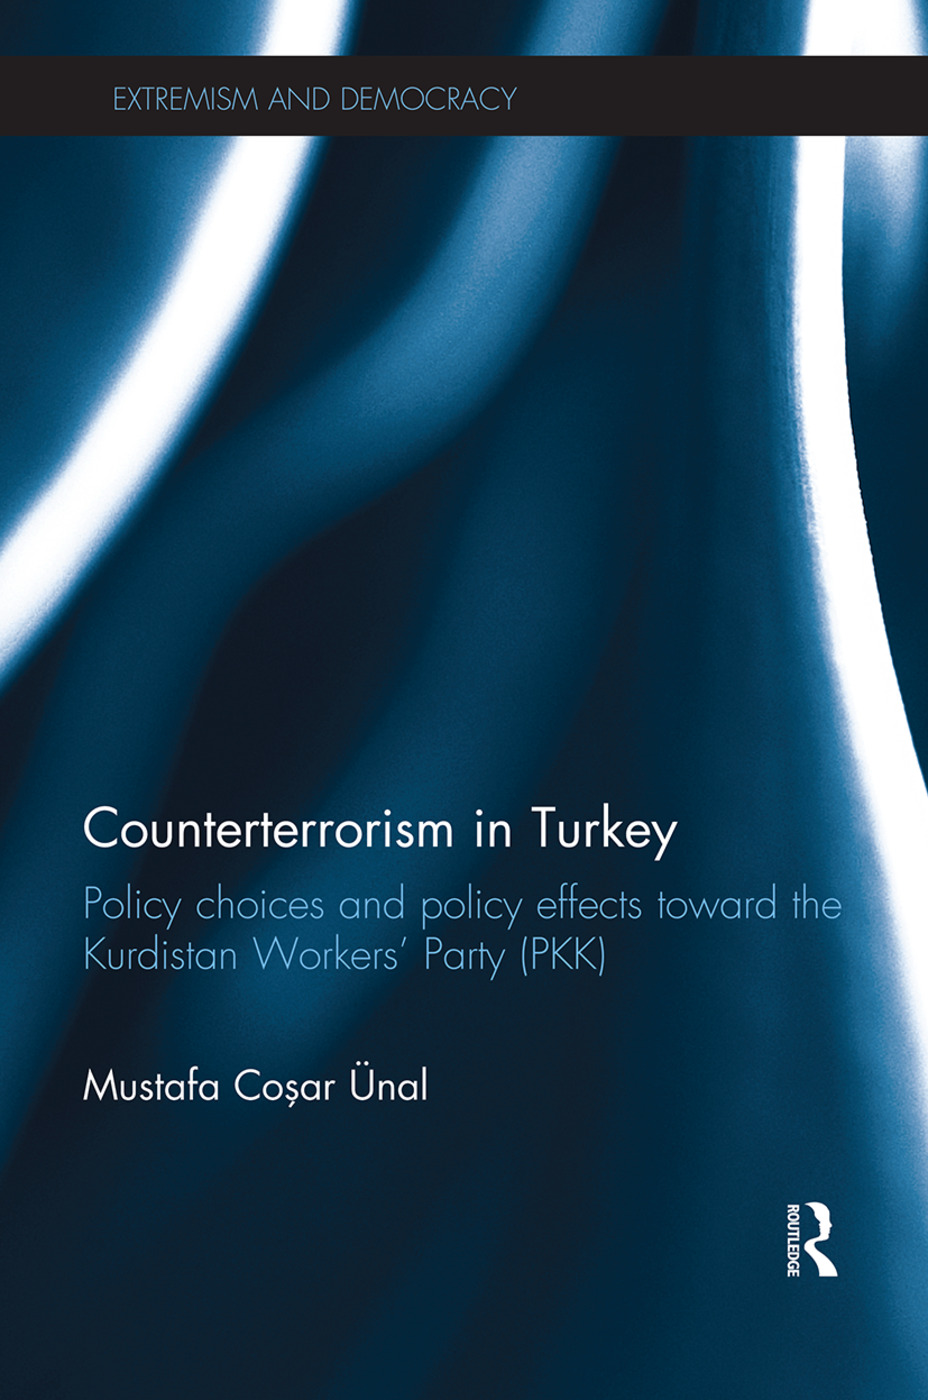 Counterterrorism in Turkey